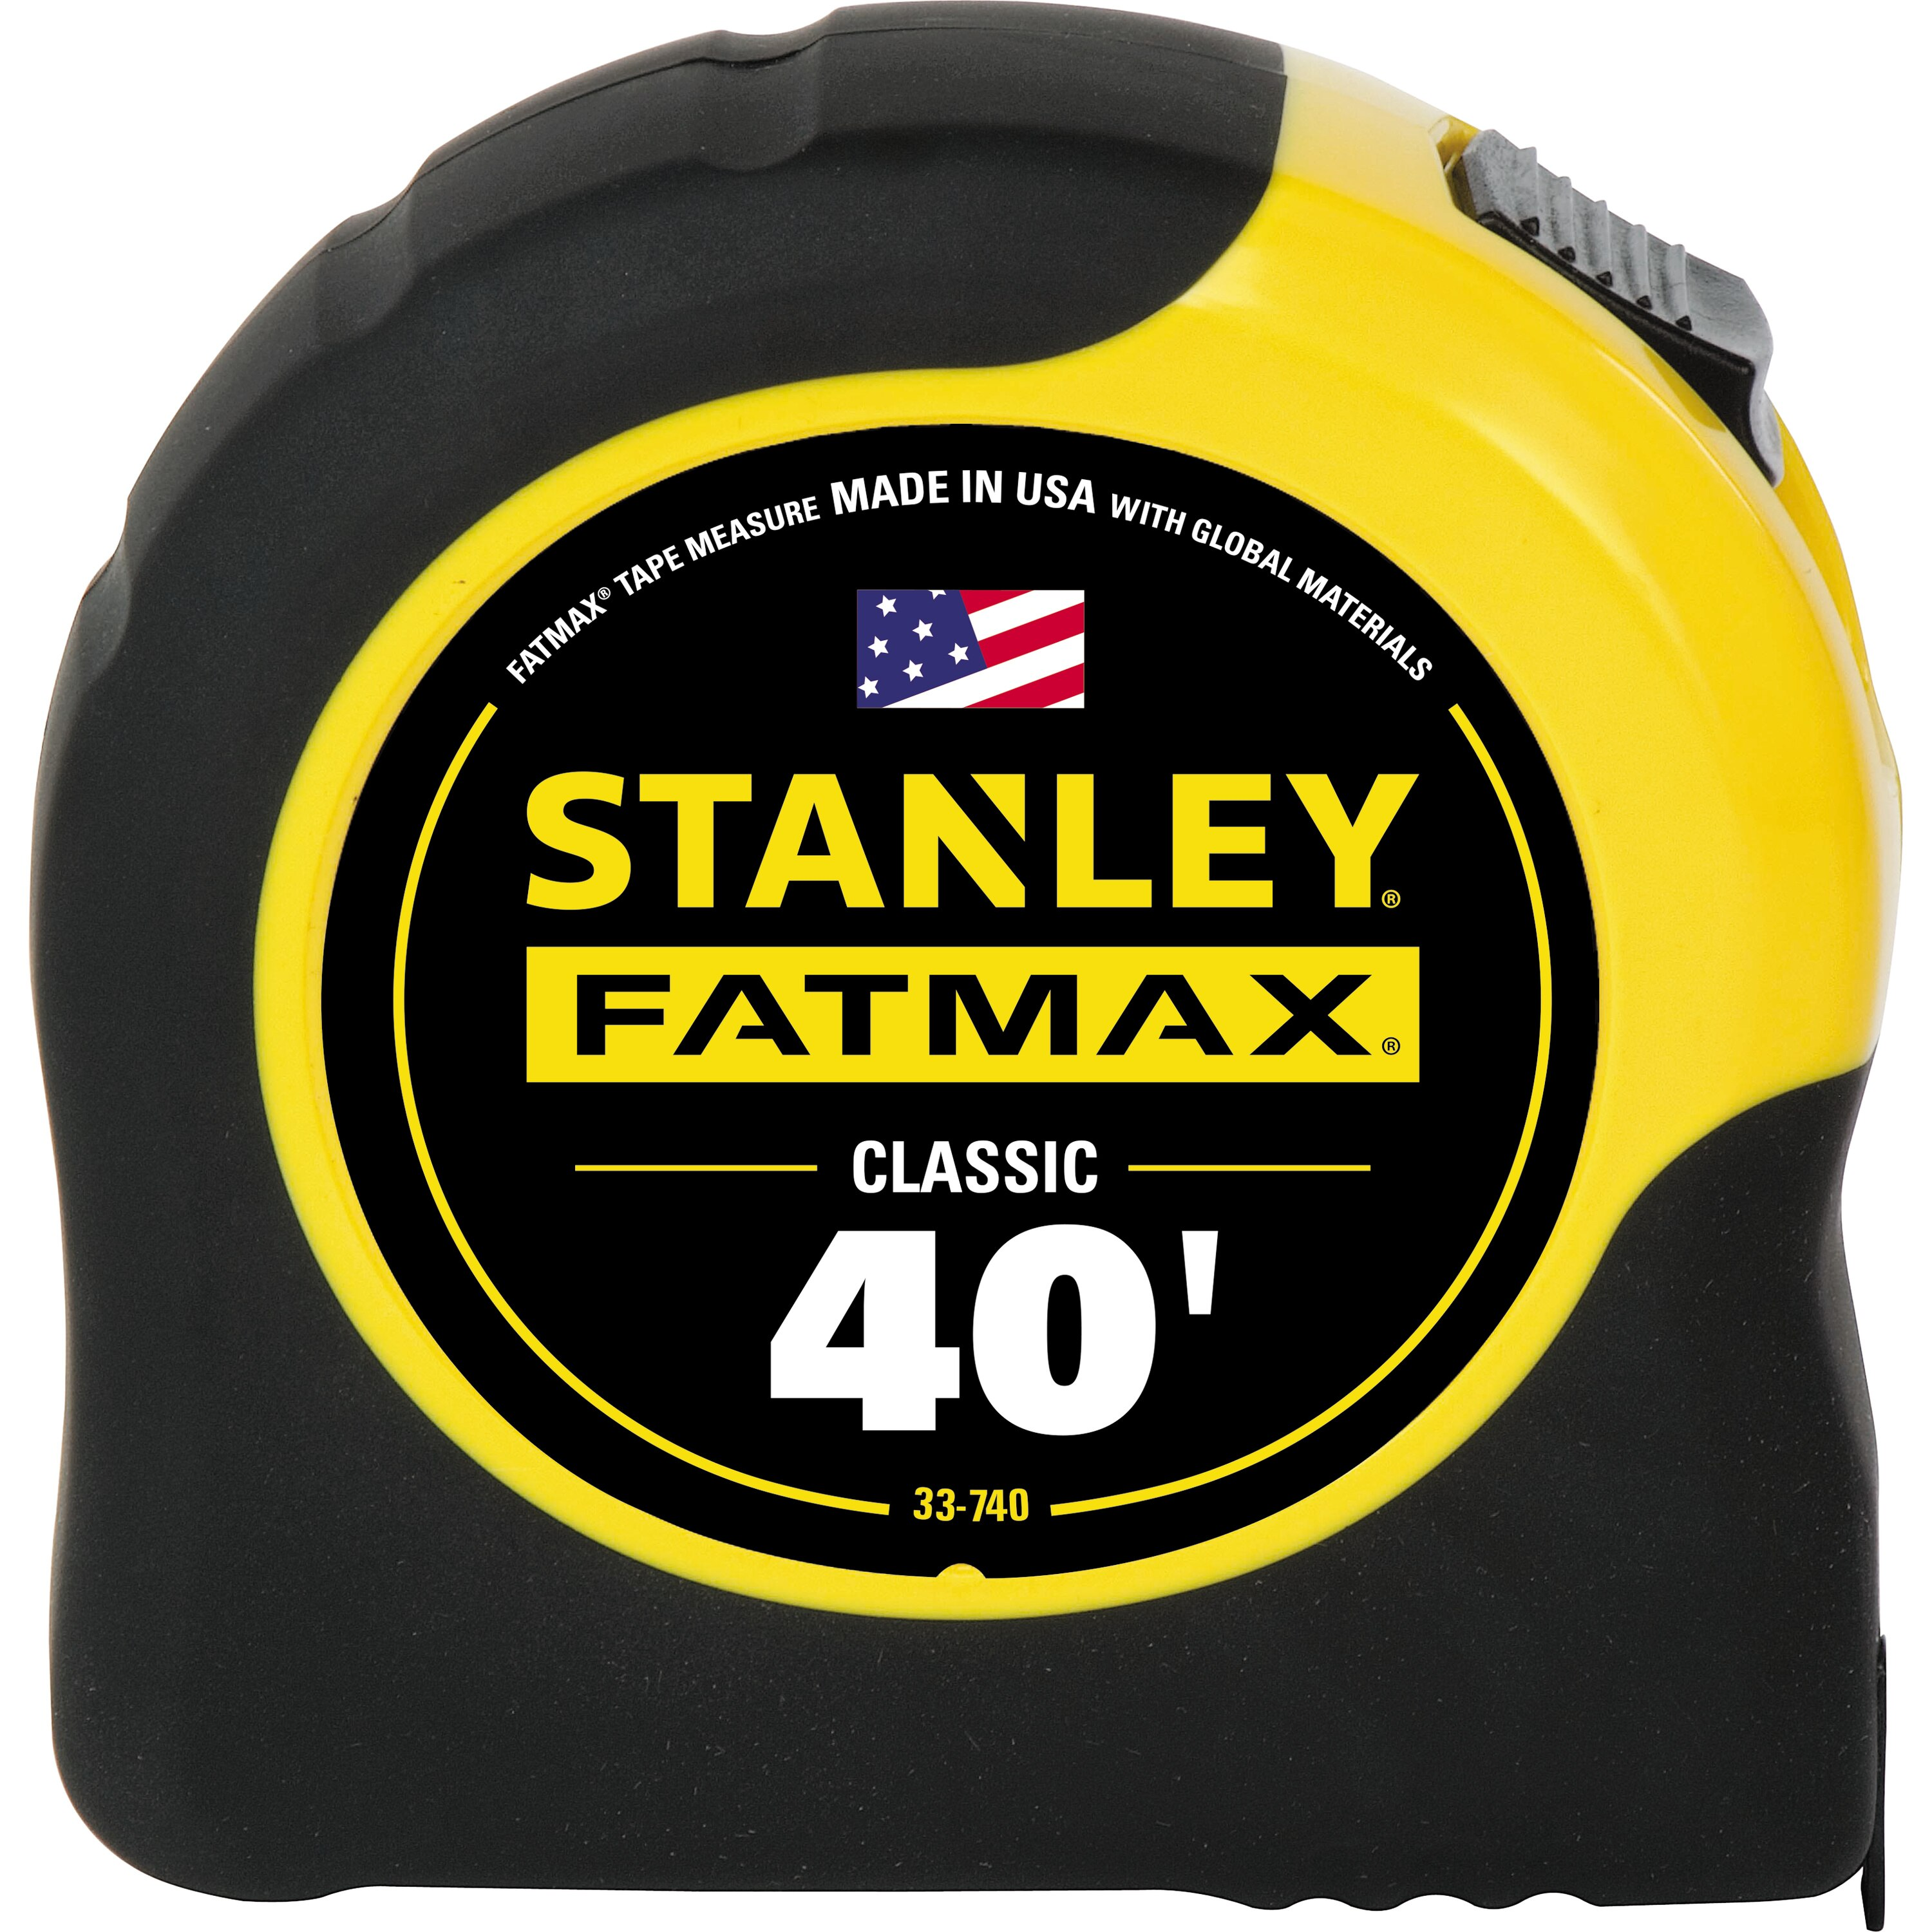 Stanley Tools - 40 ft FATMAX Classic Tape Measure - 33-740